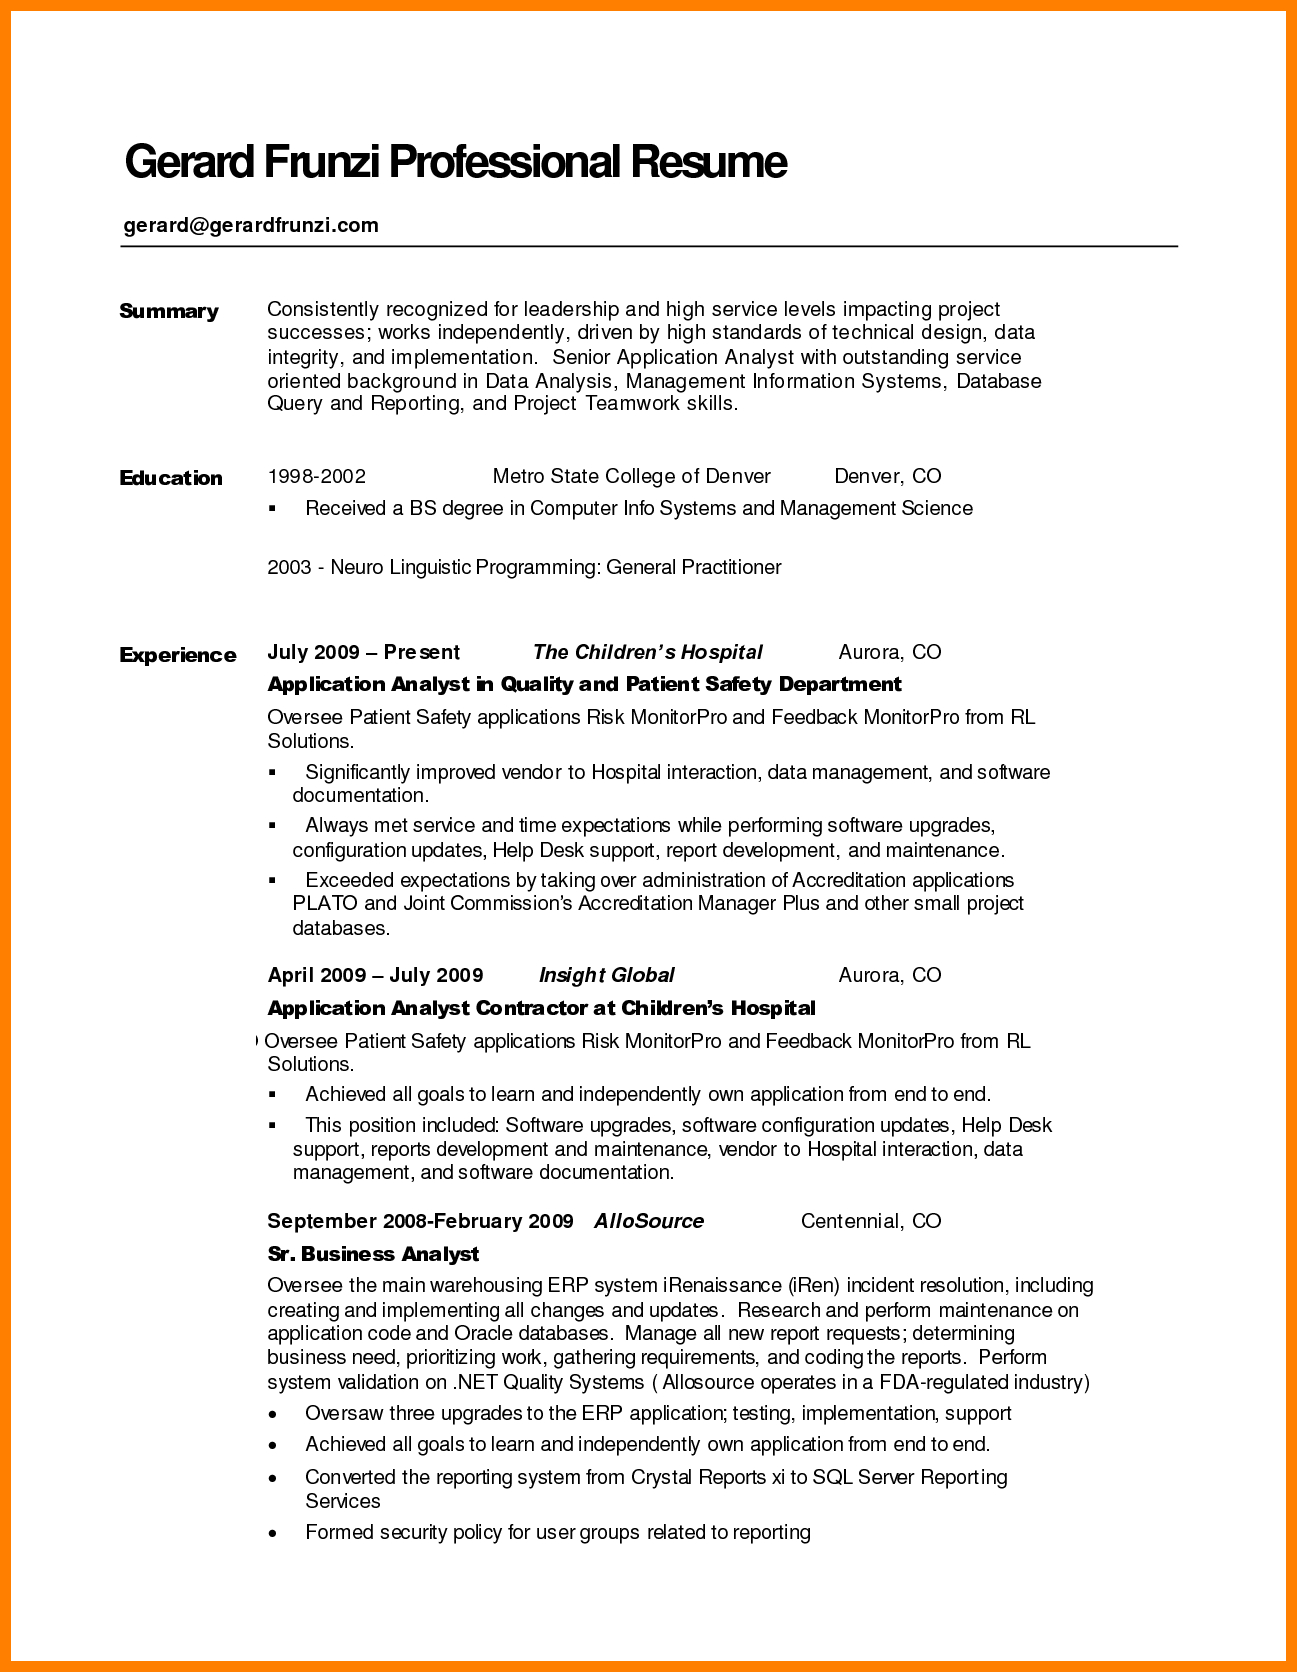 Independent Contractor Offer Letter Template - Programmer Contract Template with General Waiver Liability form